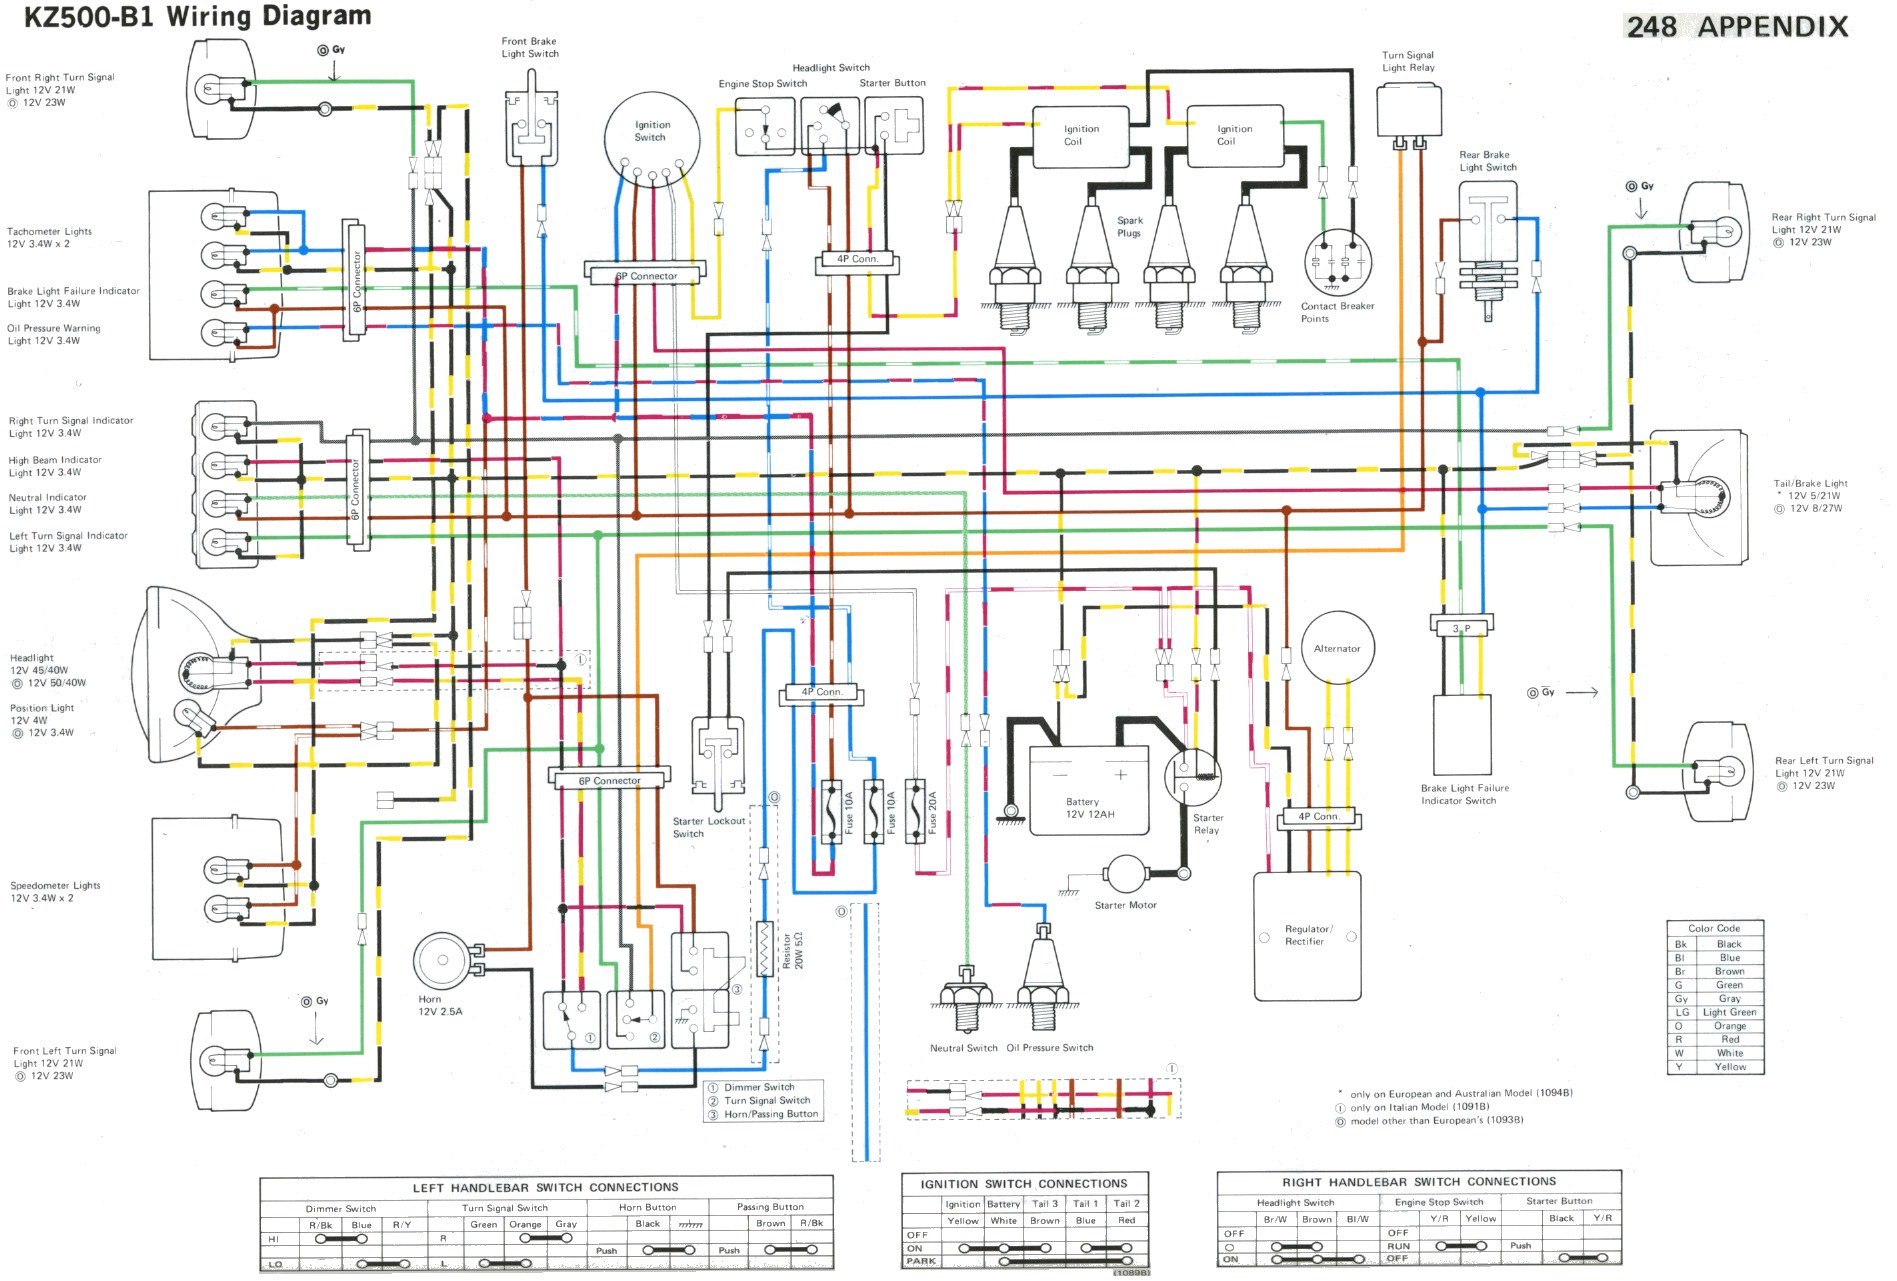 rb248kawKz500B1 some kz 400 500 550 wire diagrams kz550 wiring diagram at edmiracle.co